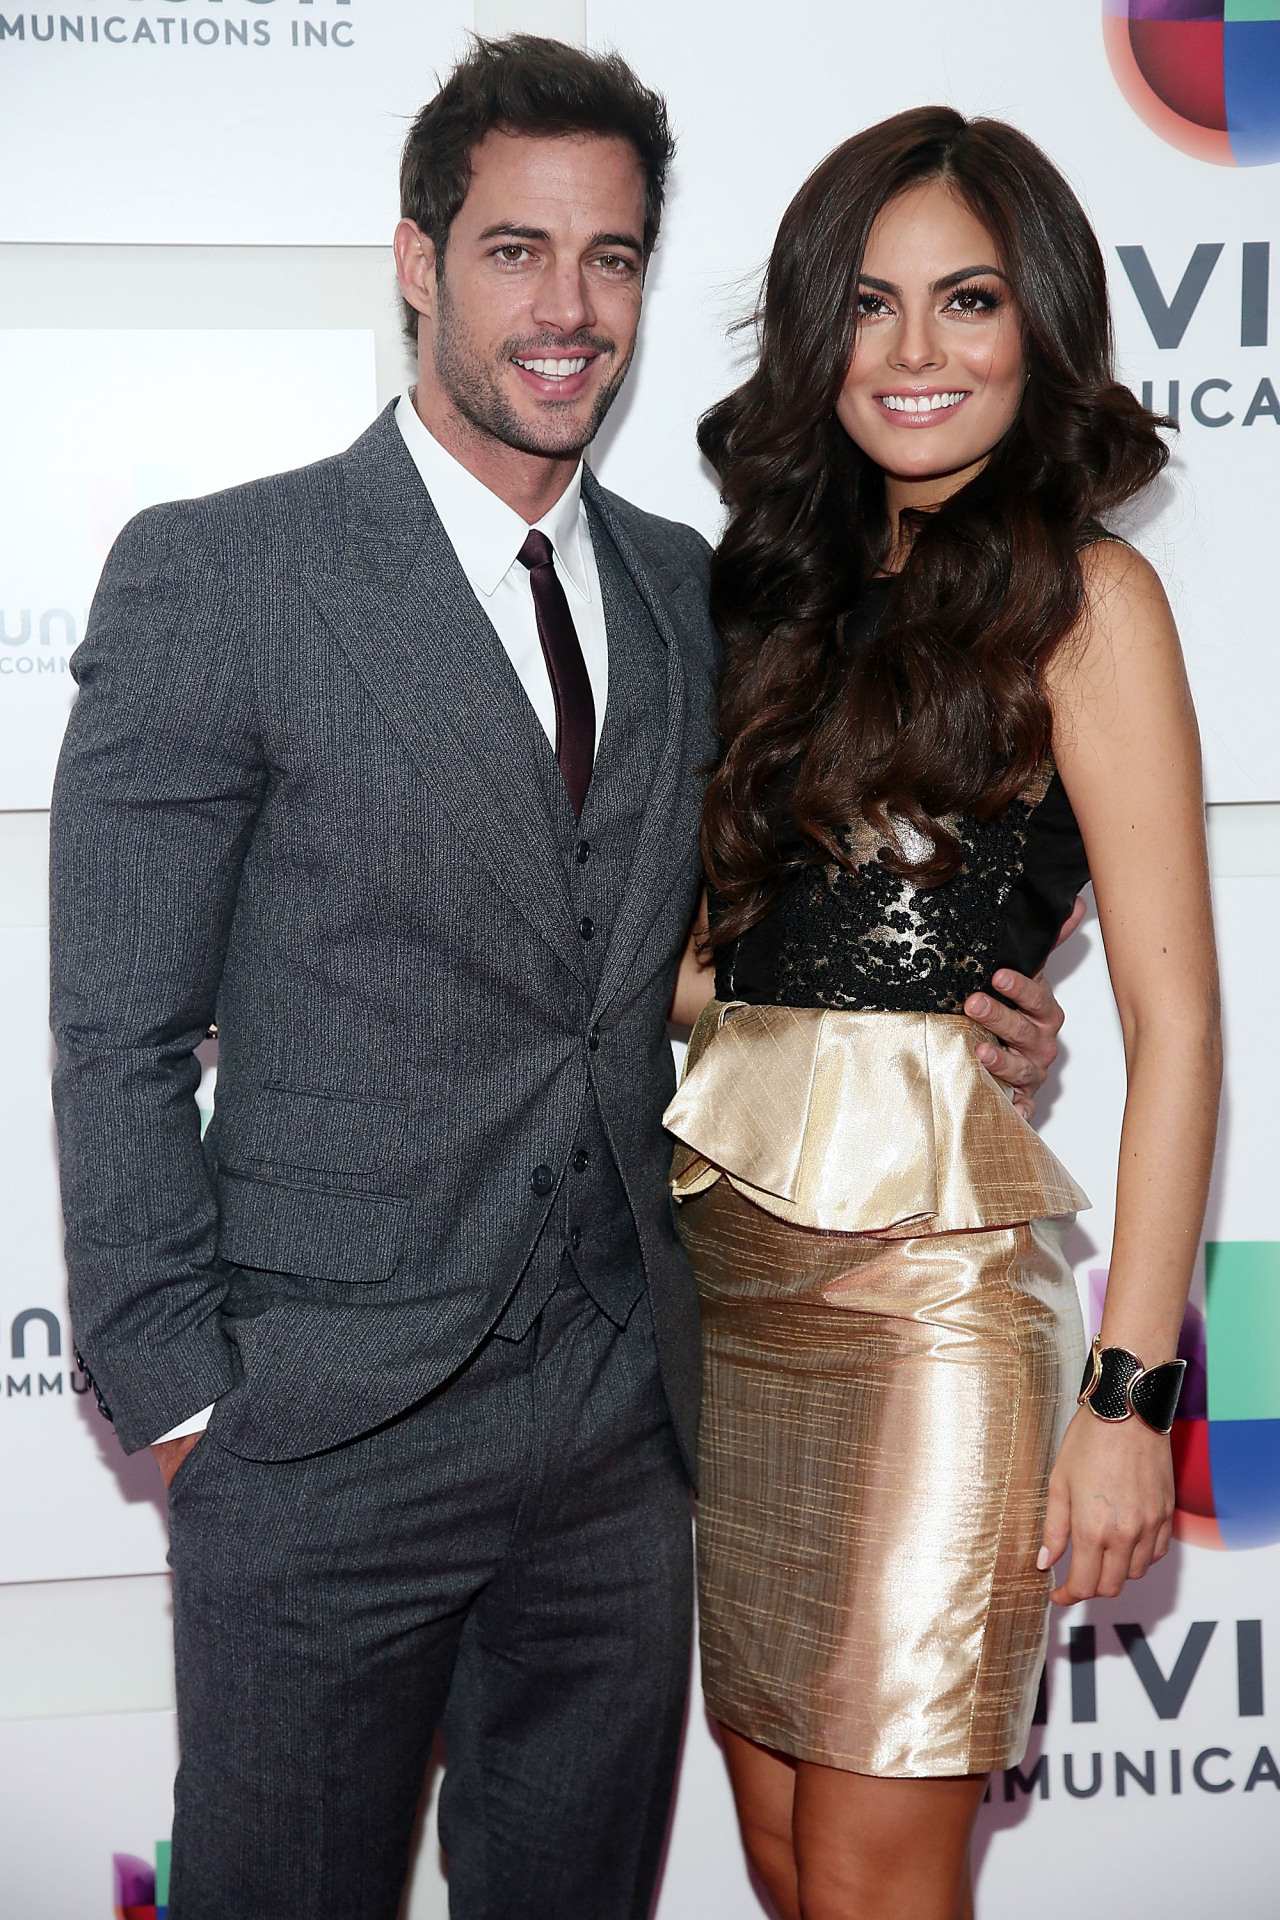 More HQ pictures of William & Ximena at www.williamlevyfans.com